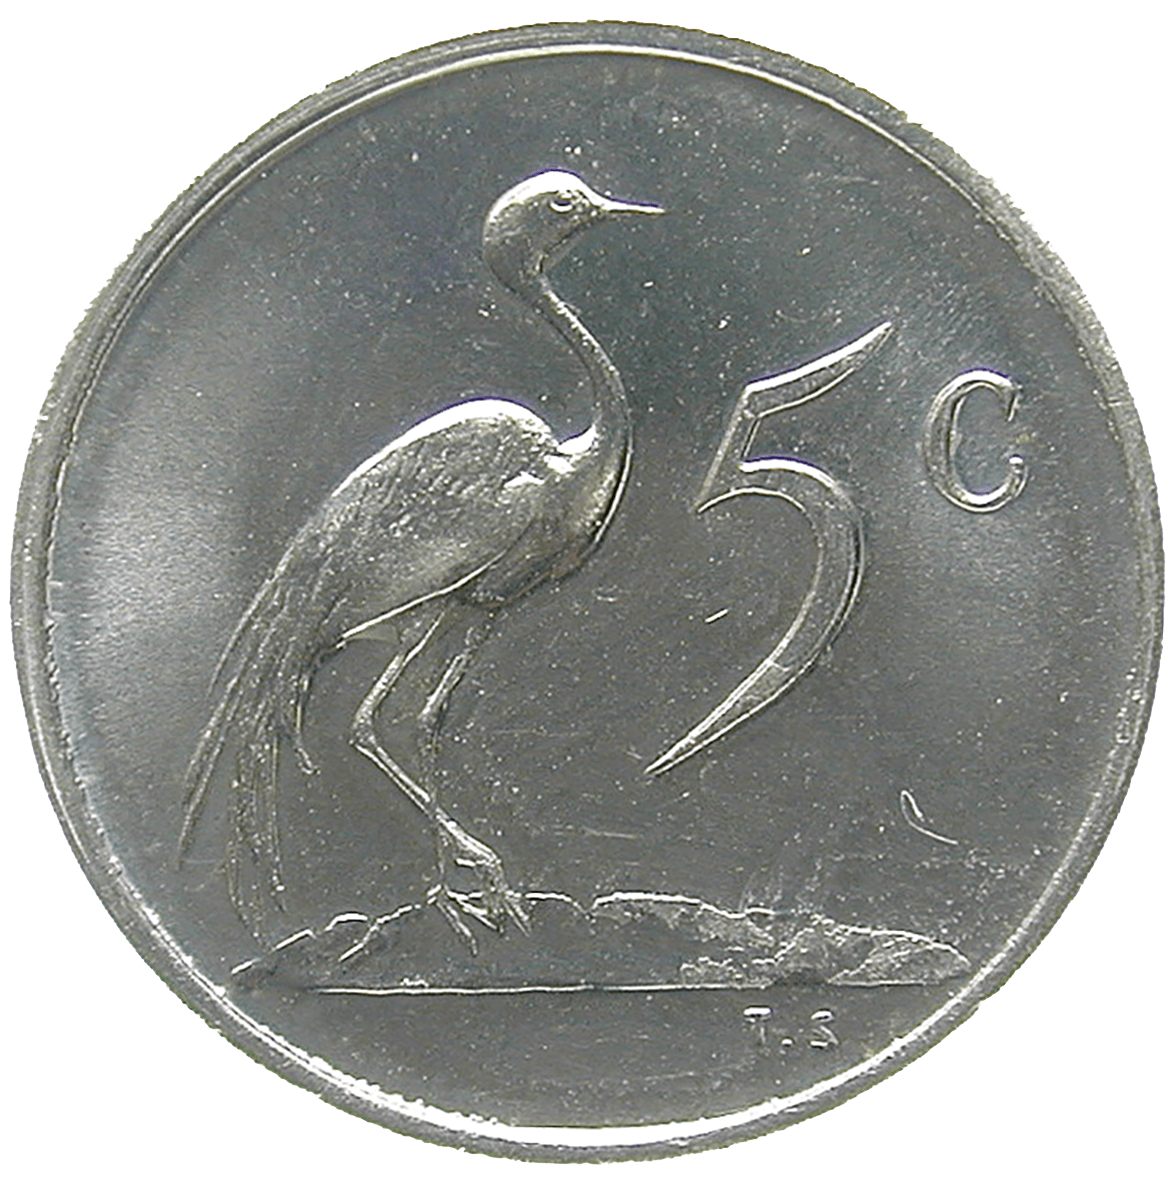 Republic of South Africa, 5 Cents 1980 (reverse)